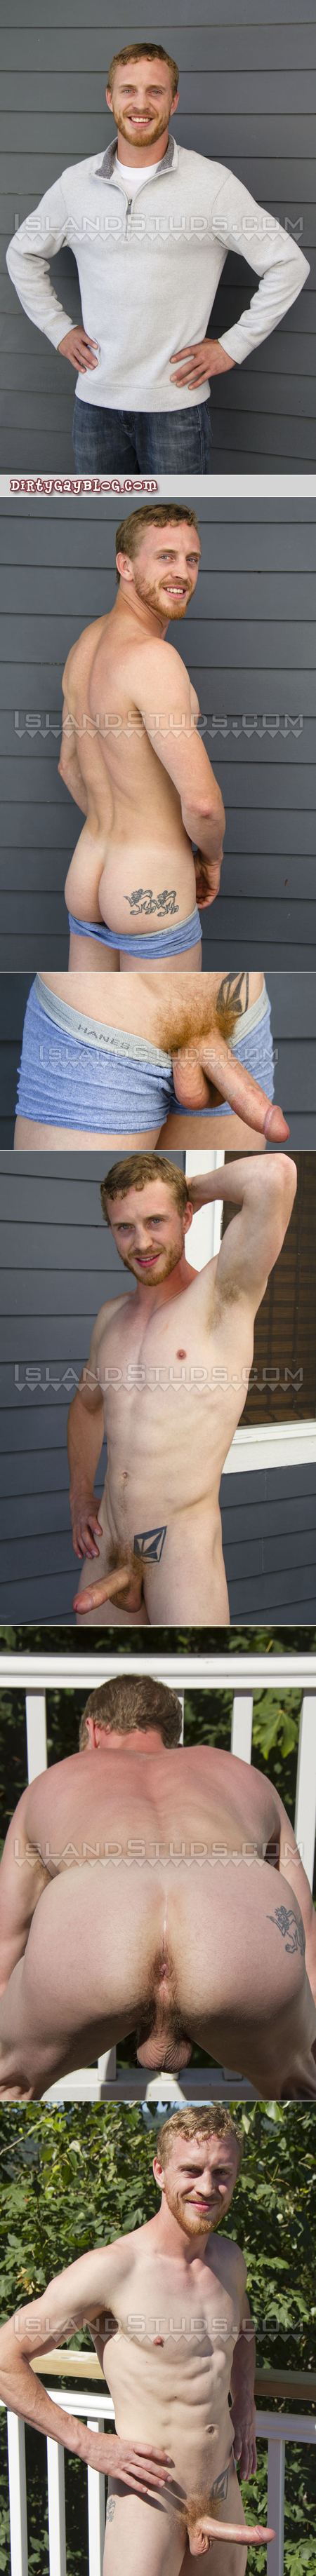 Muscular ginger man nude.